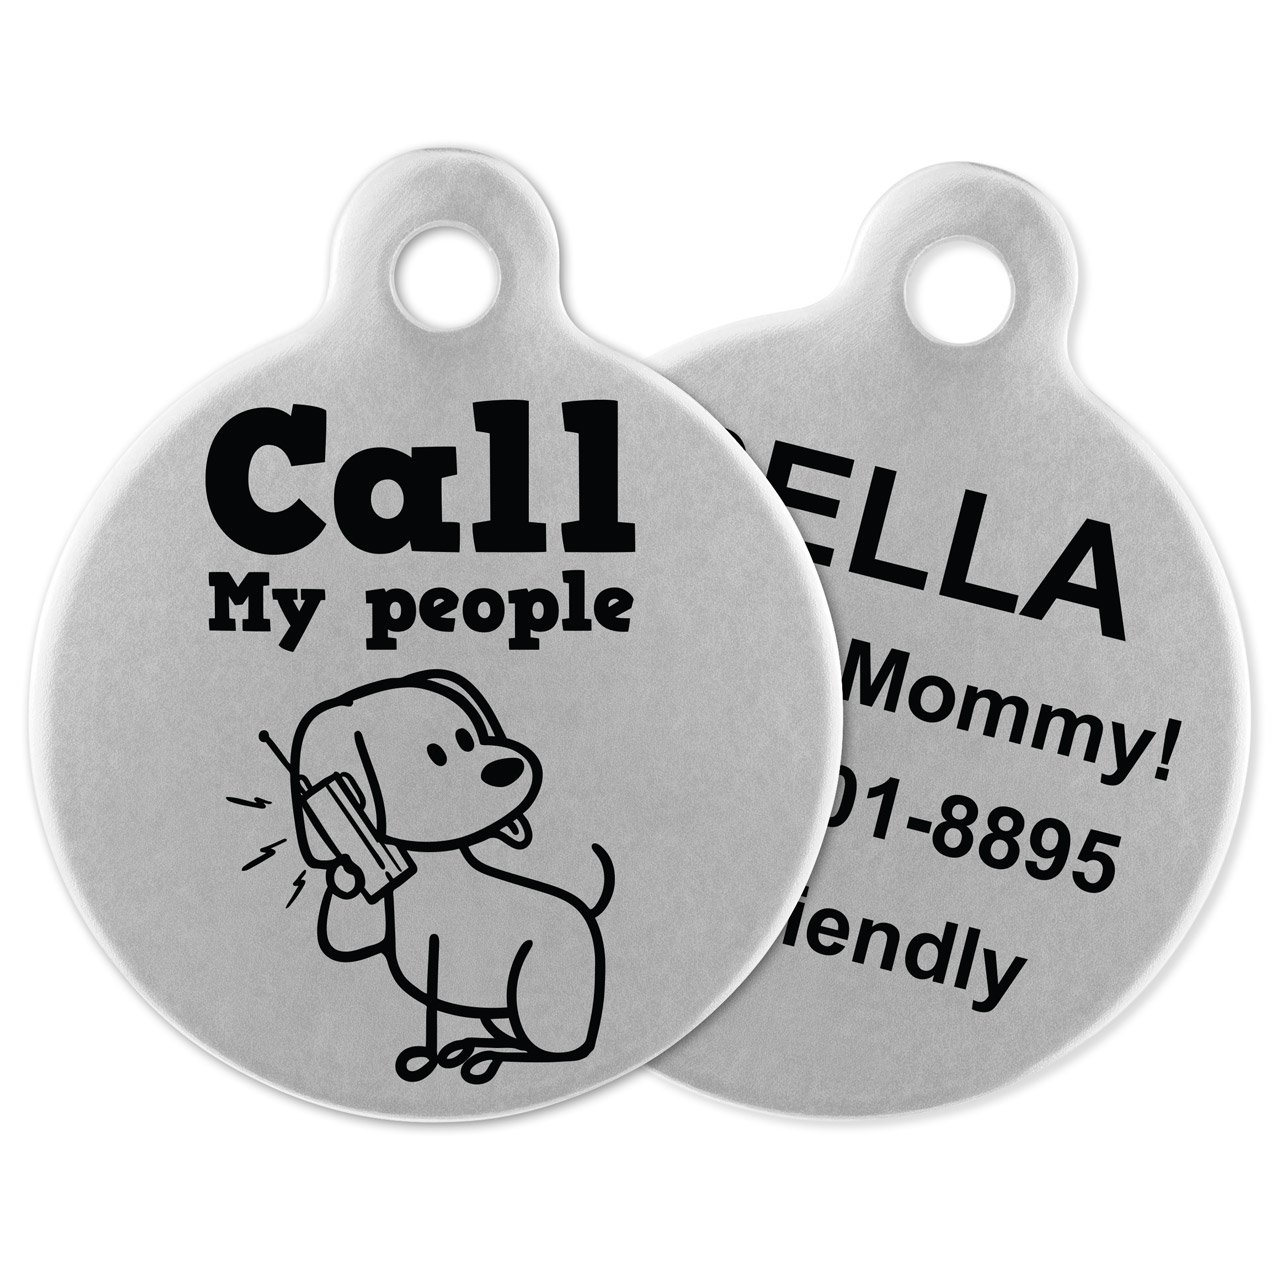 If It Barks Engraved Pet ID Tags For Dogs - Personalized Pet ID Name Tag Attachment - Made in USA, Stainless Steel Dog Tags (Call My People)